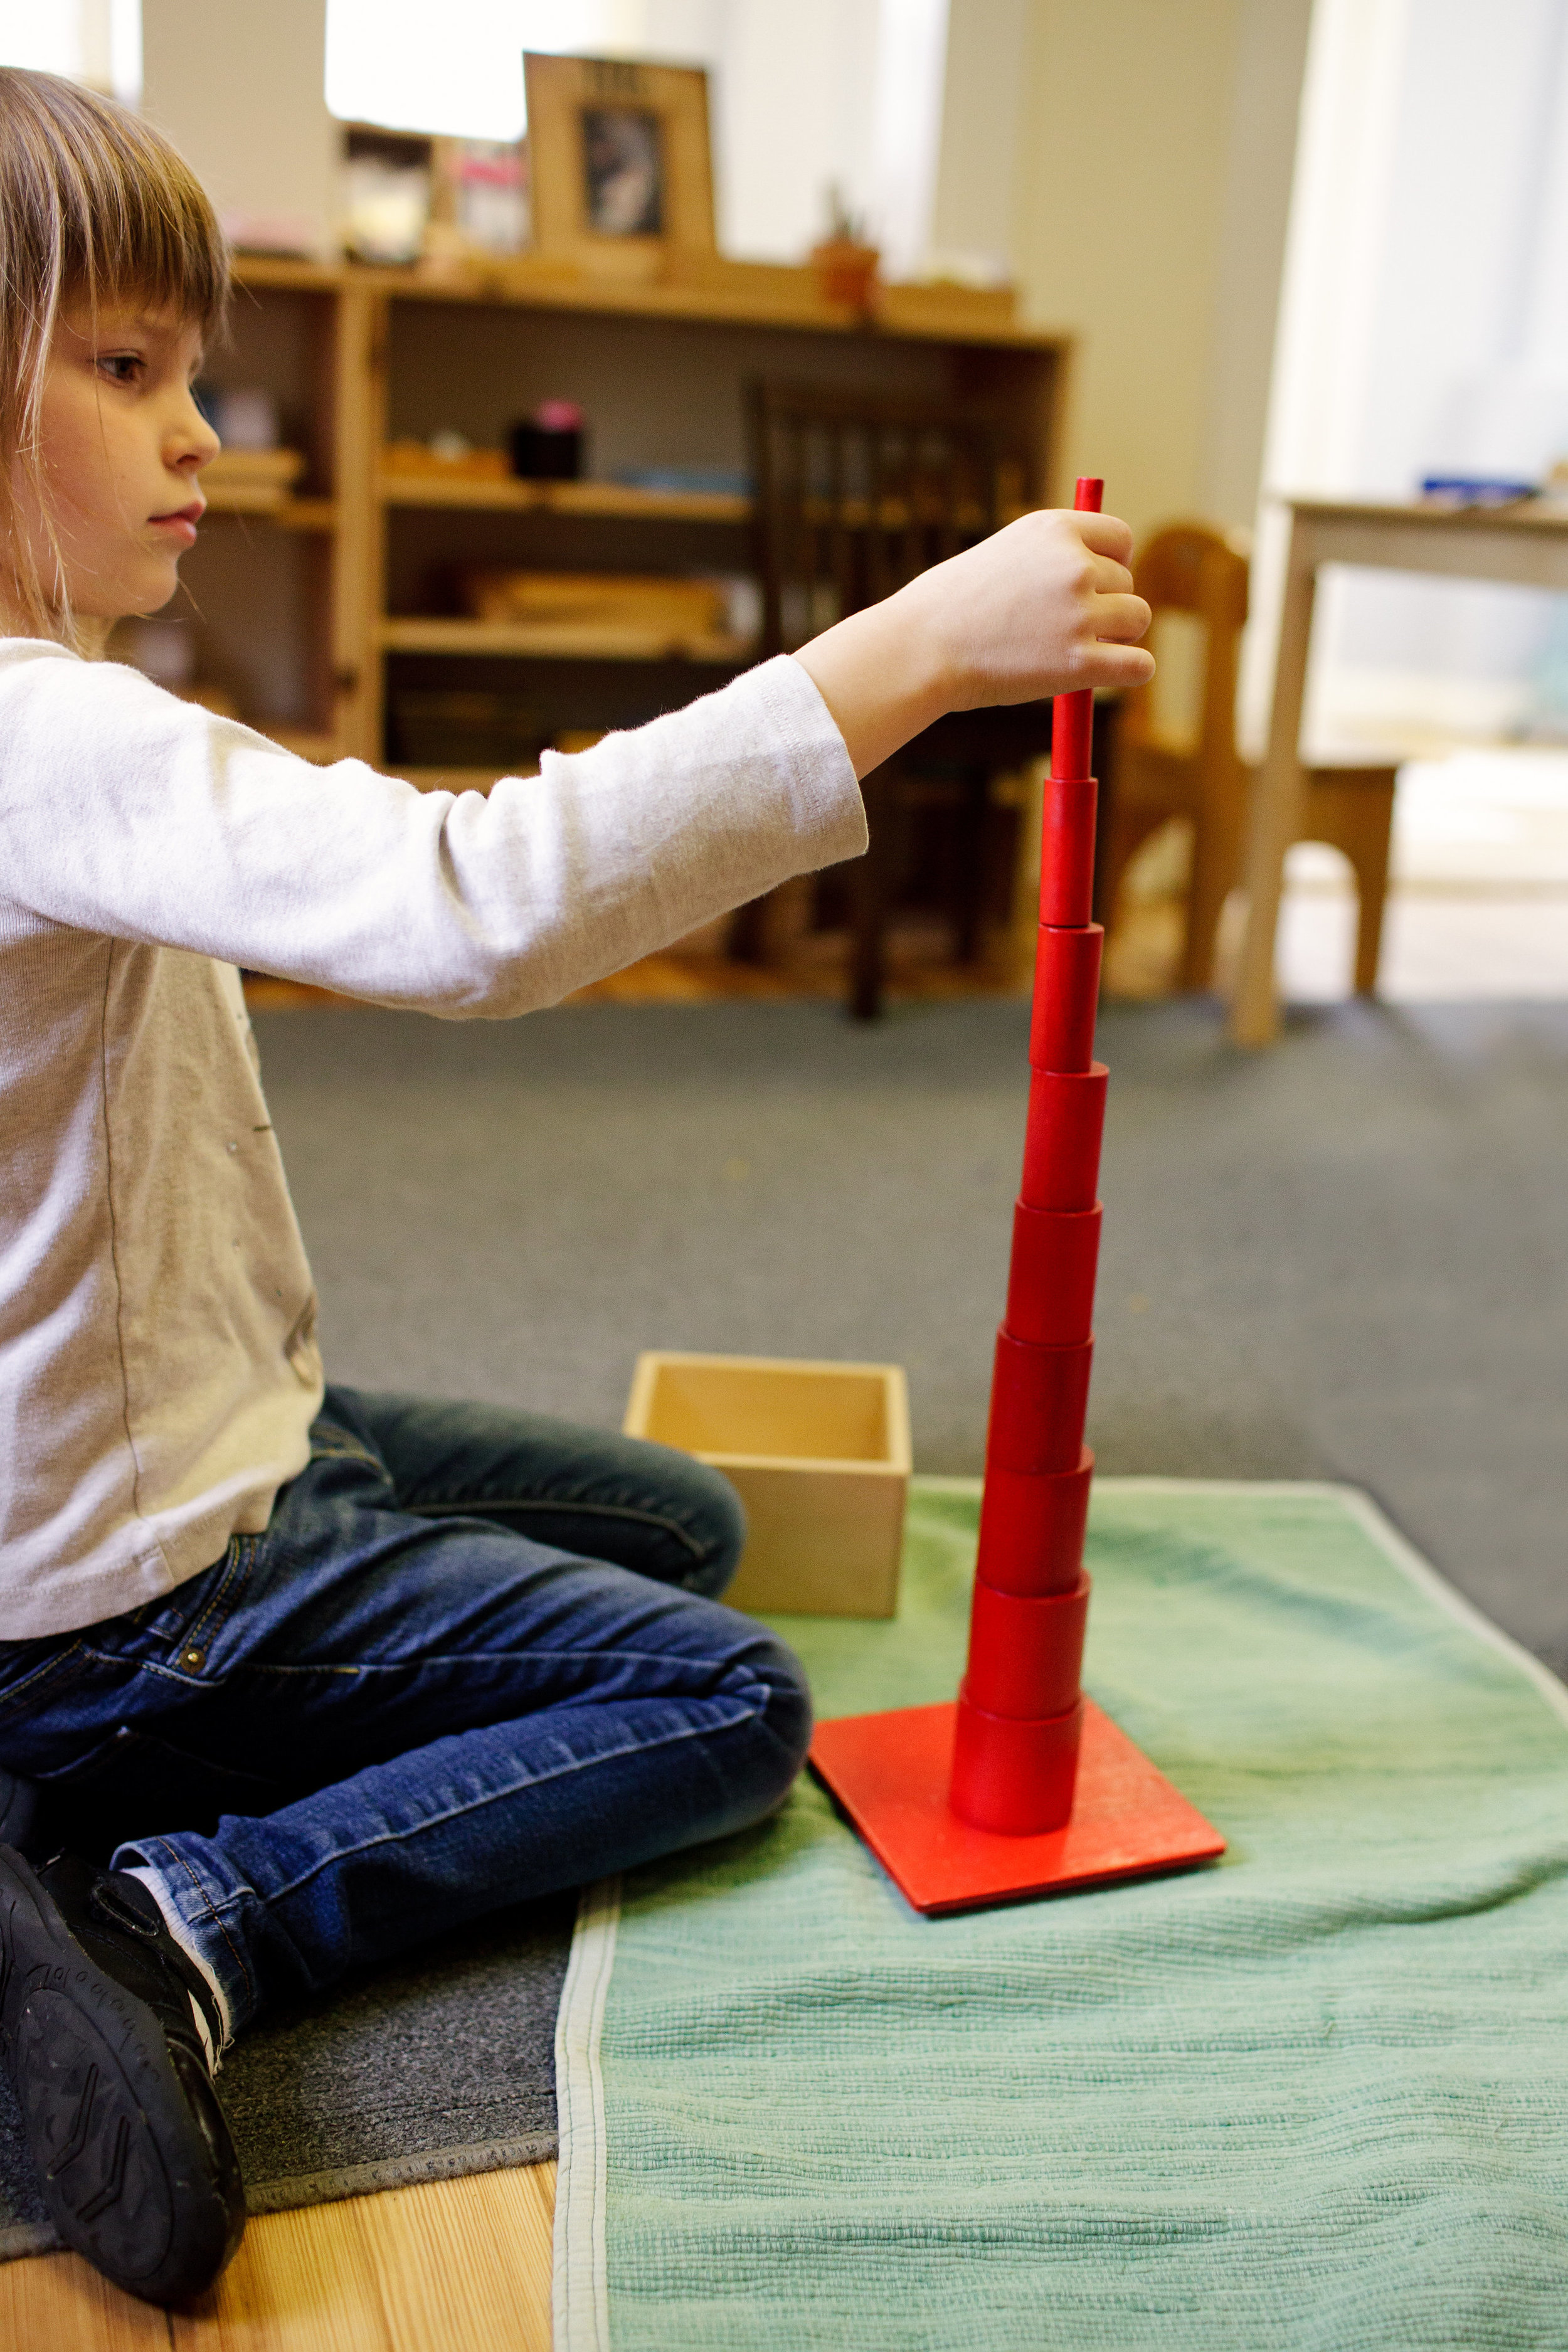 Building a tower with the Knobless Cylinders